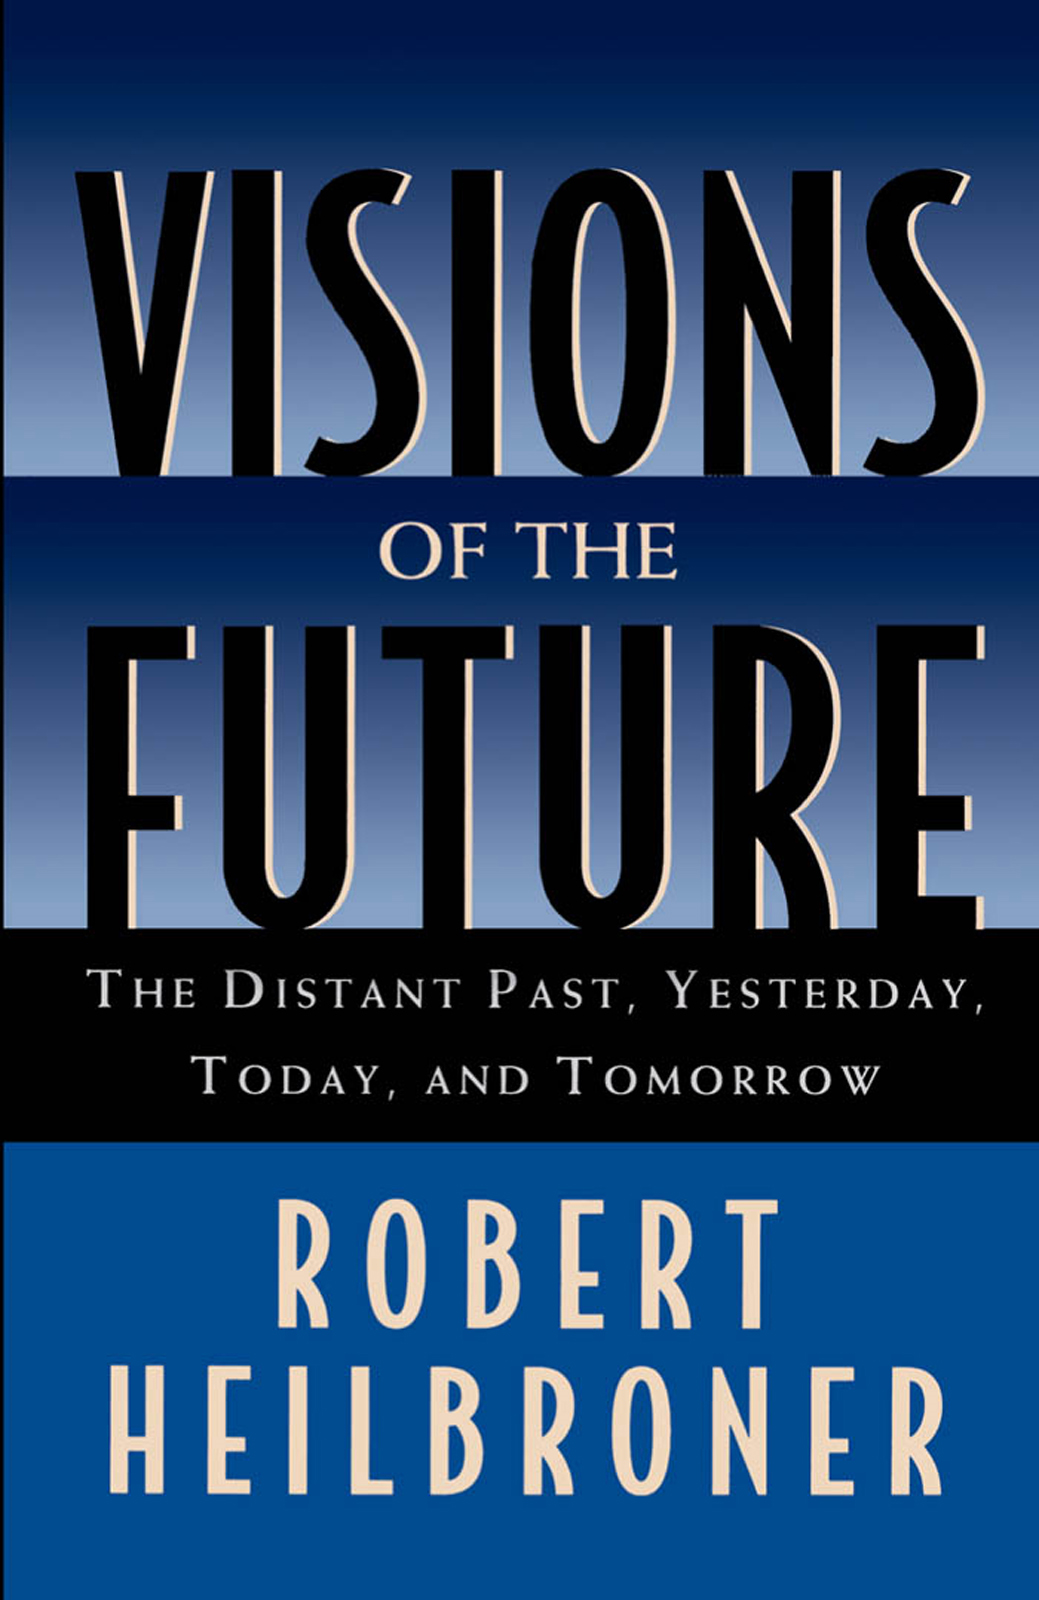 Visions of the Future:The Distant Past, Yesterday, Today, and Tomorrow